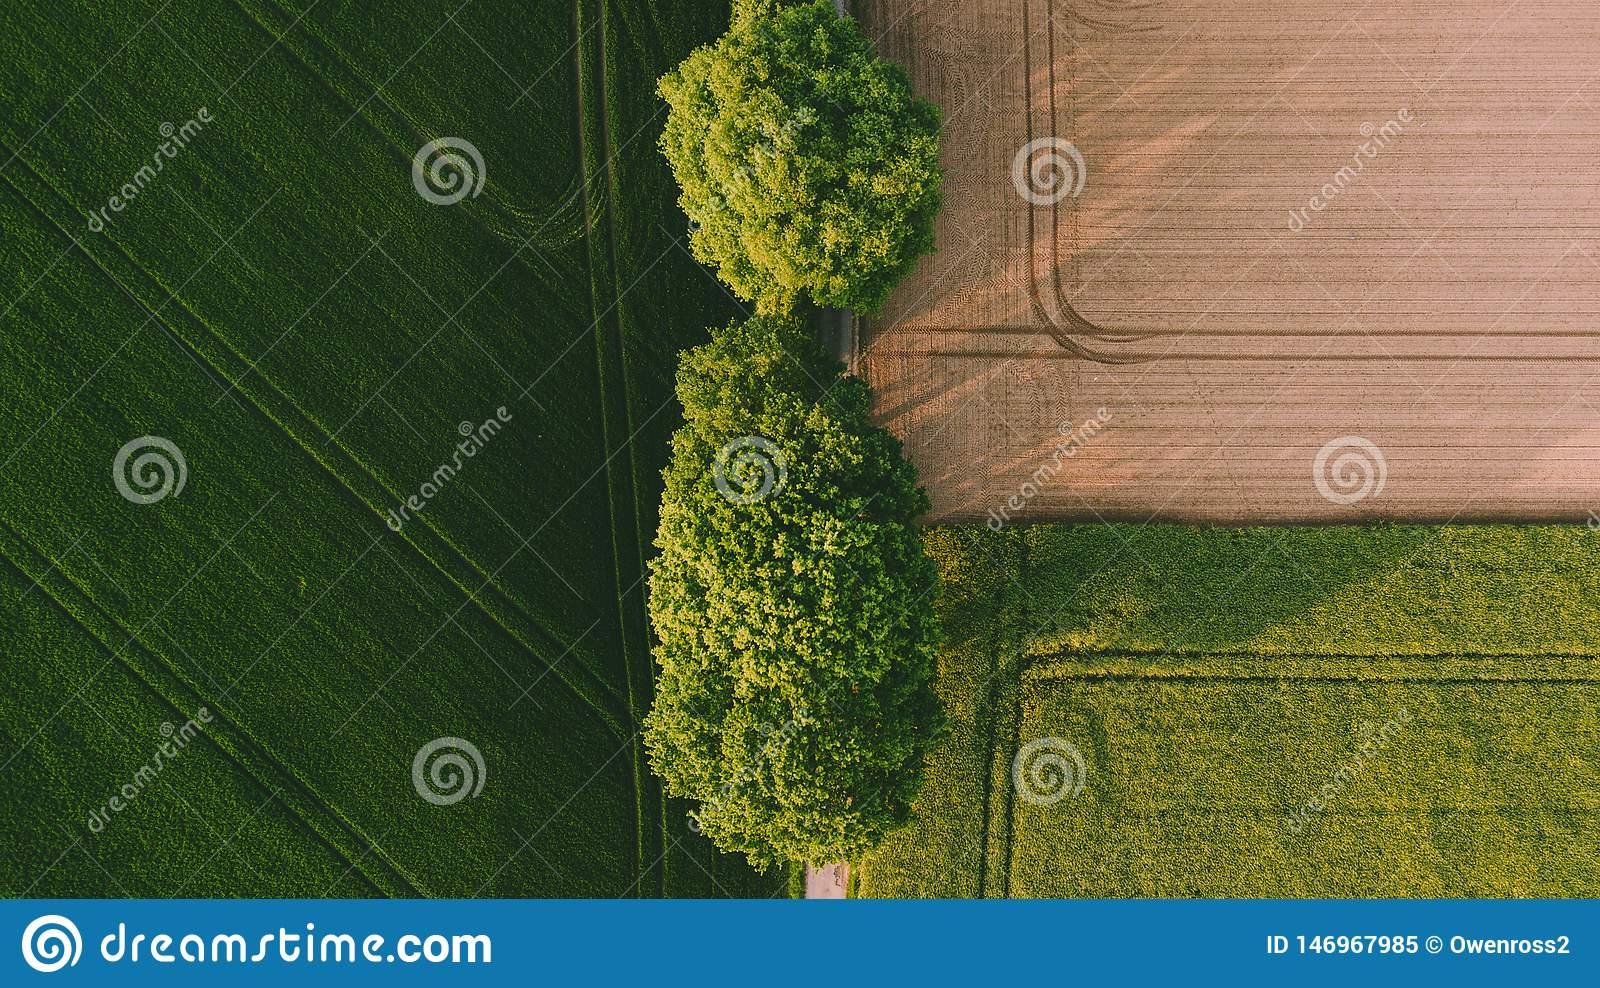 Two big green trees between a brown yellow field and a green field